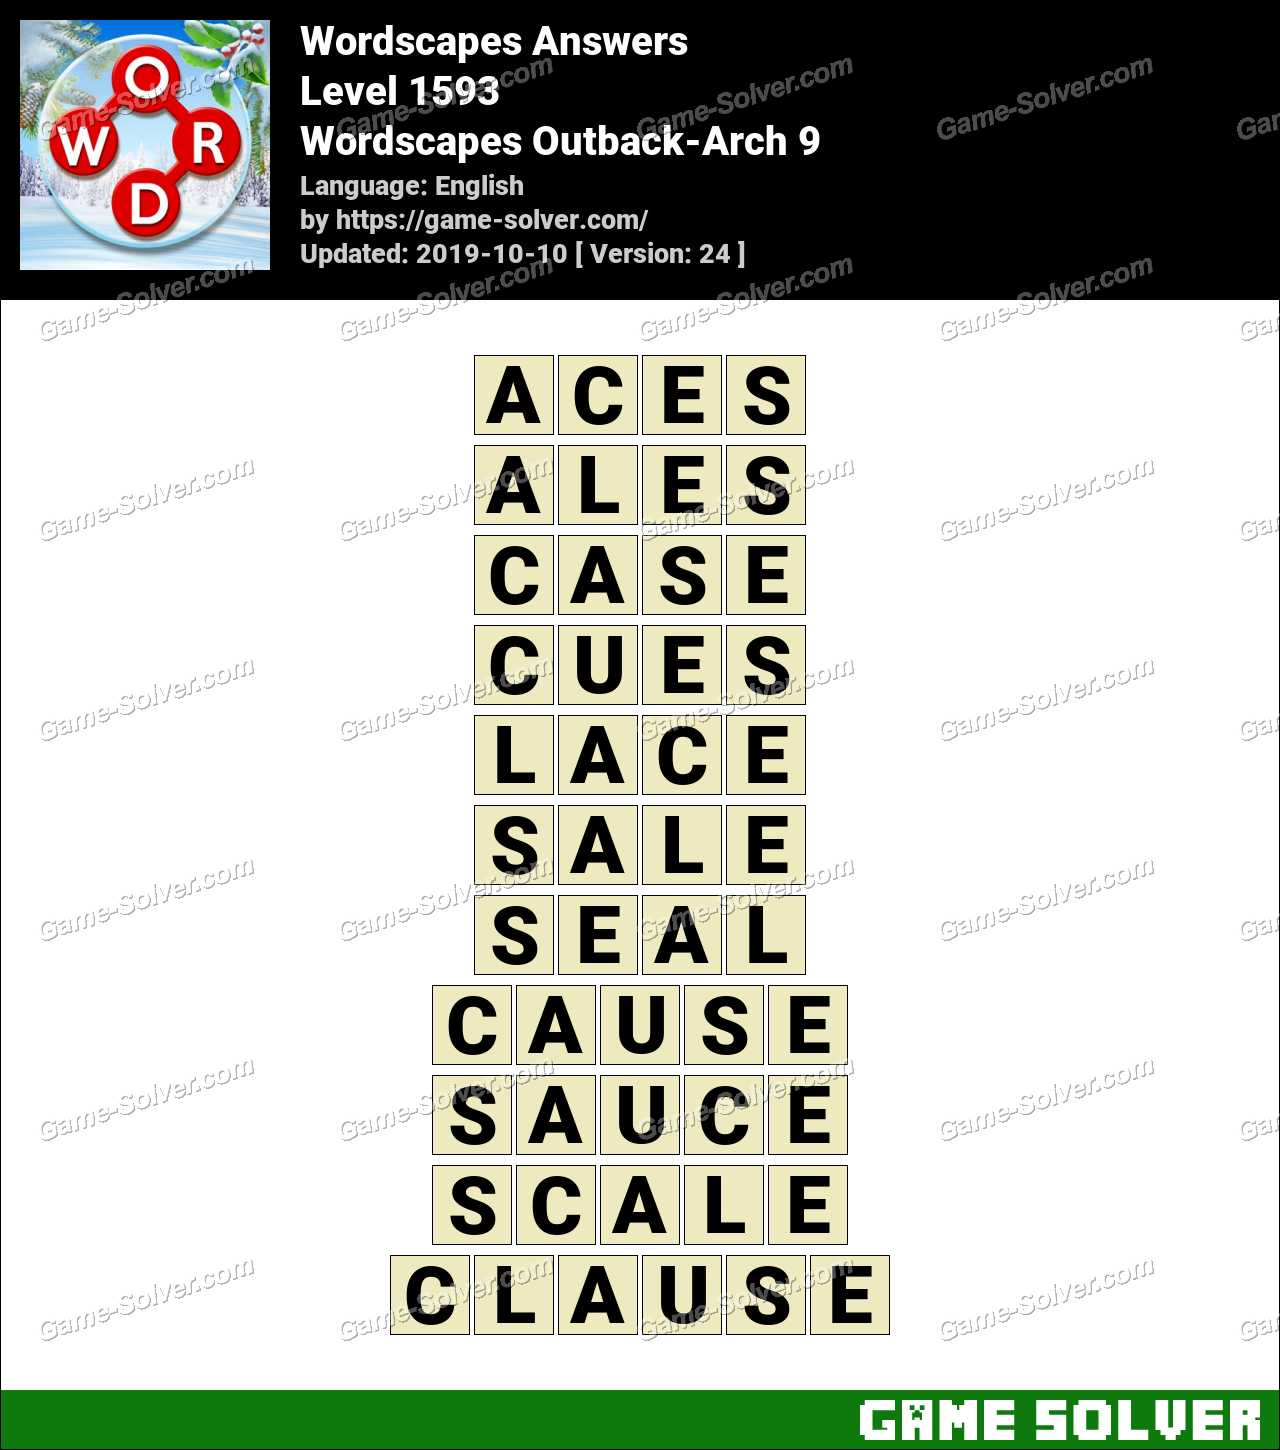 Wordscapes Outback-Arch 9 Answers